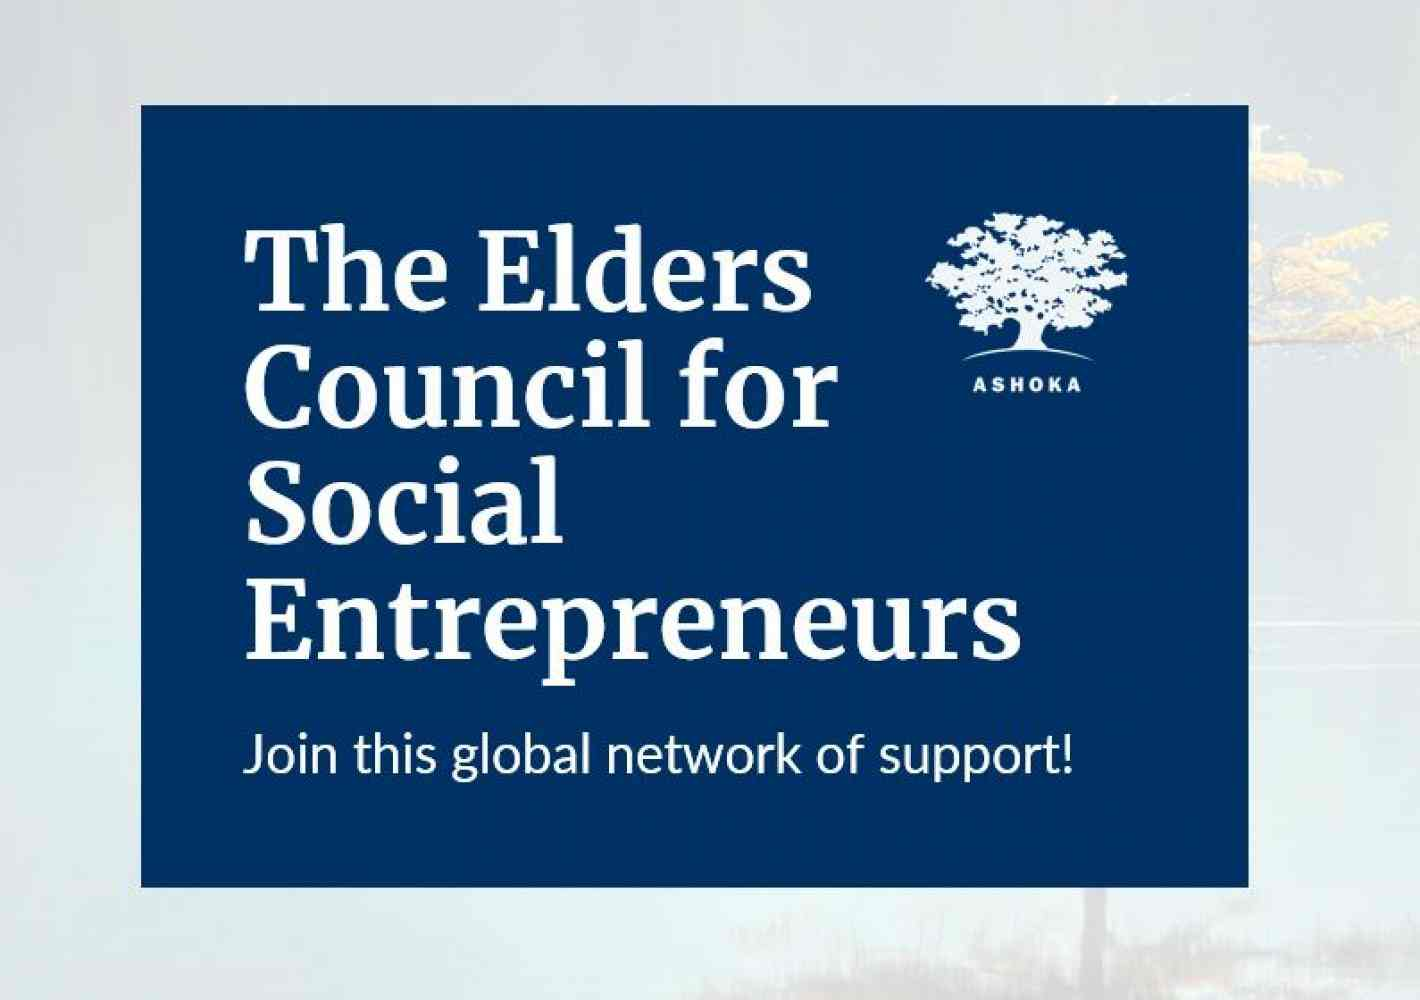 The Elders Council for Social Entrepreneurs